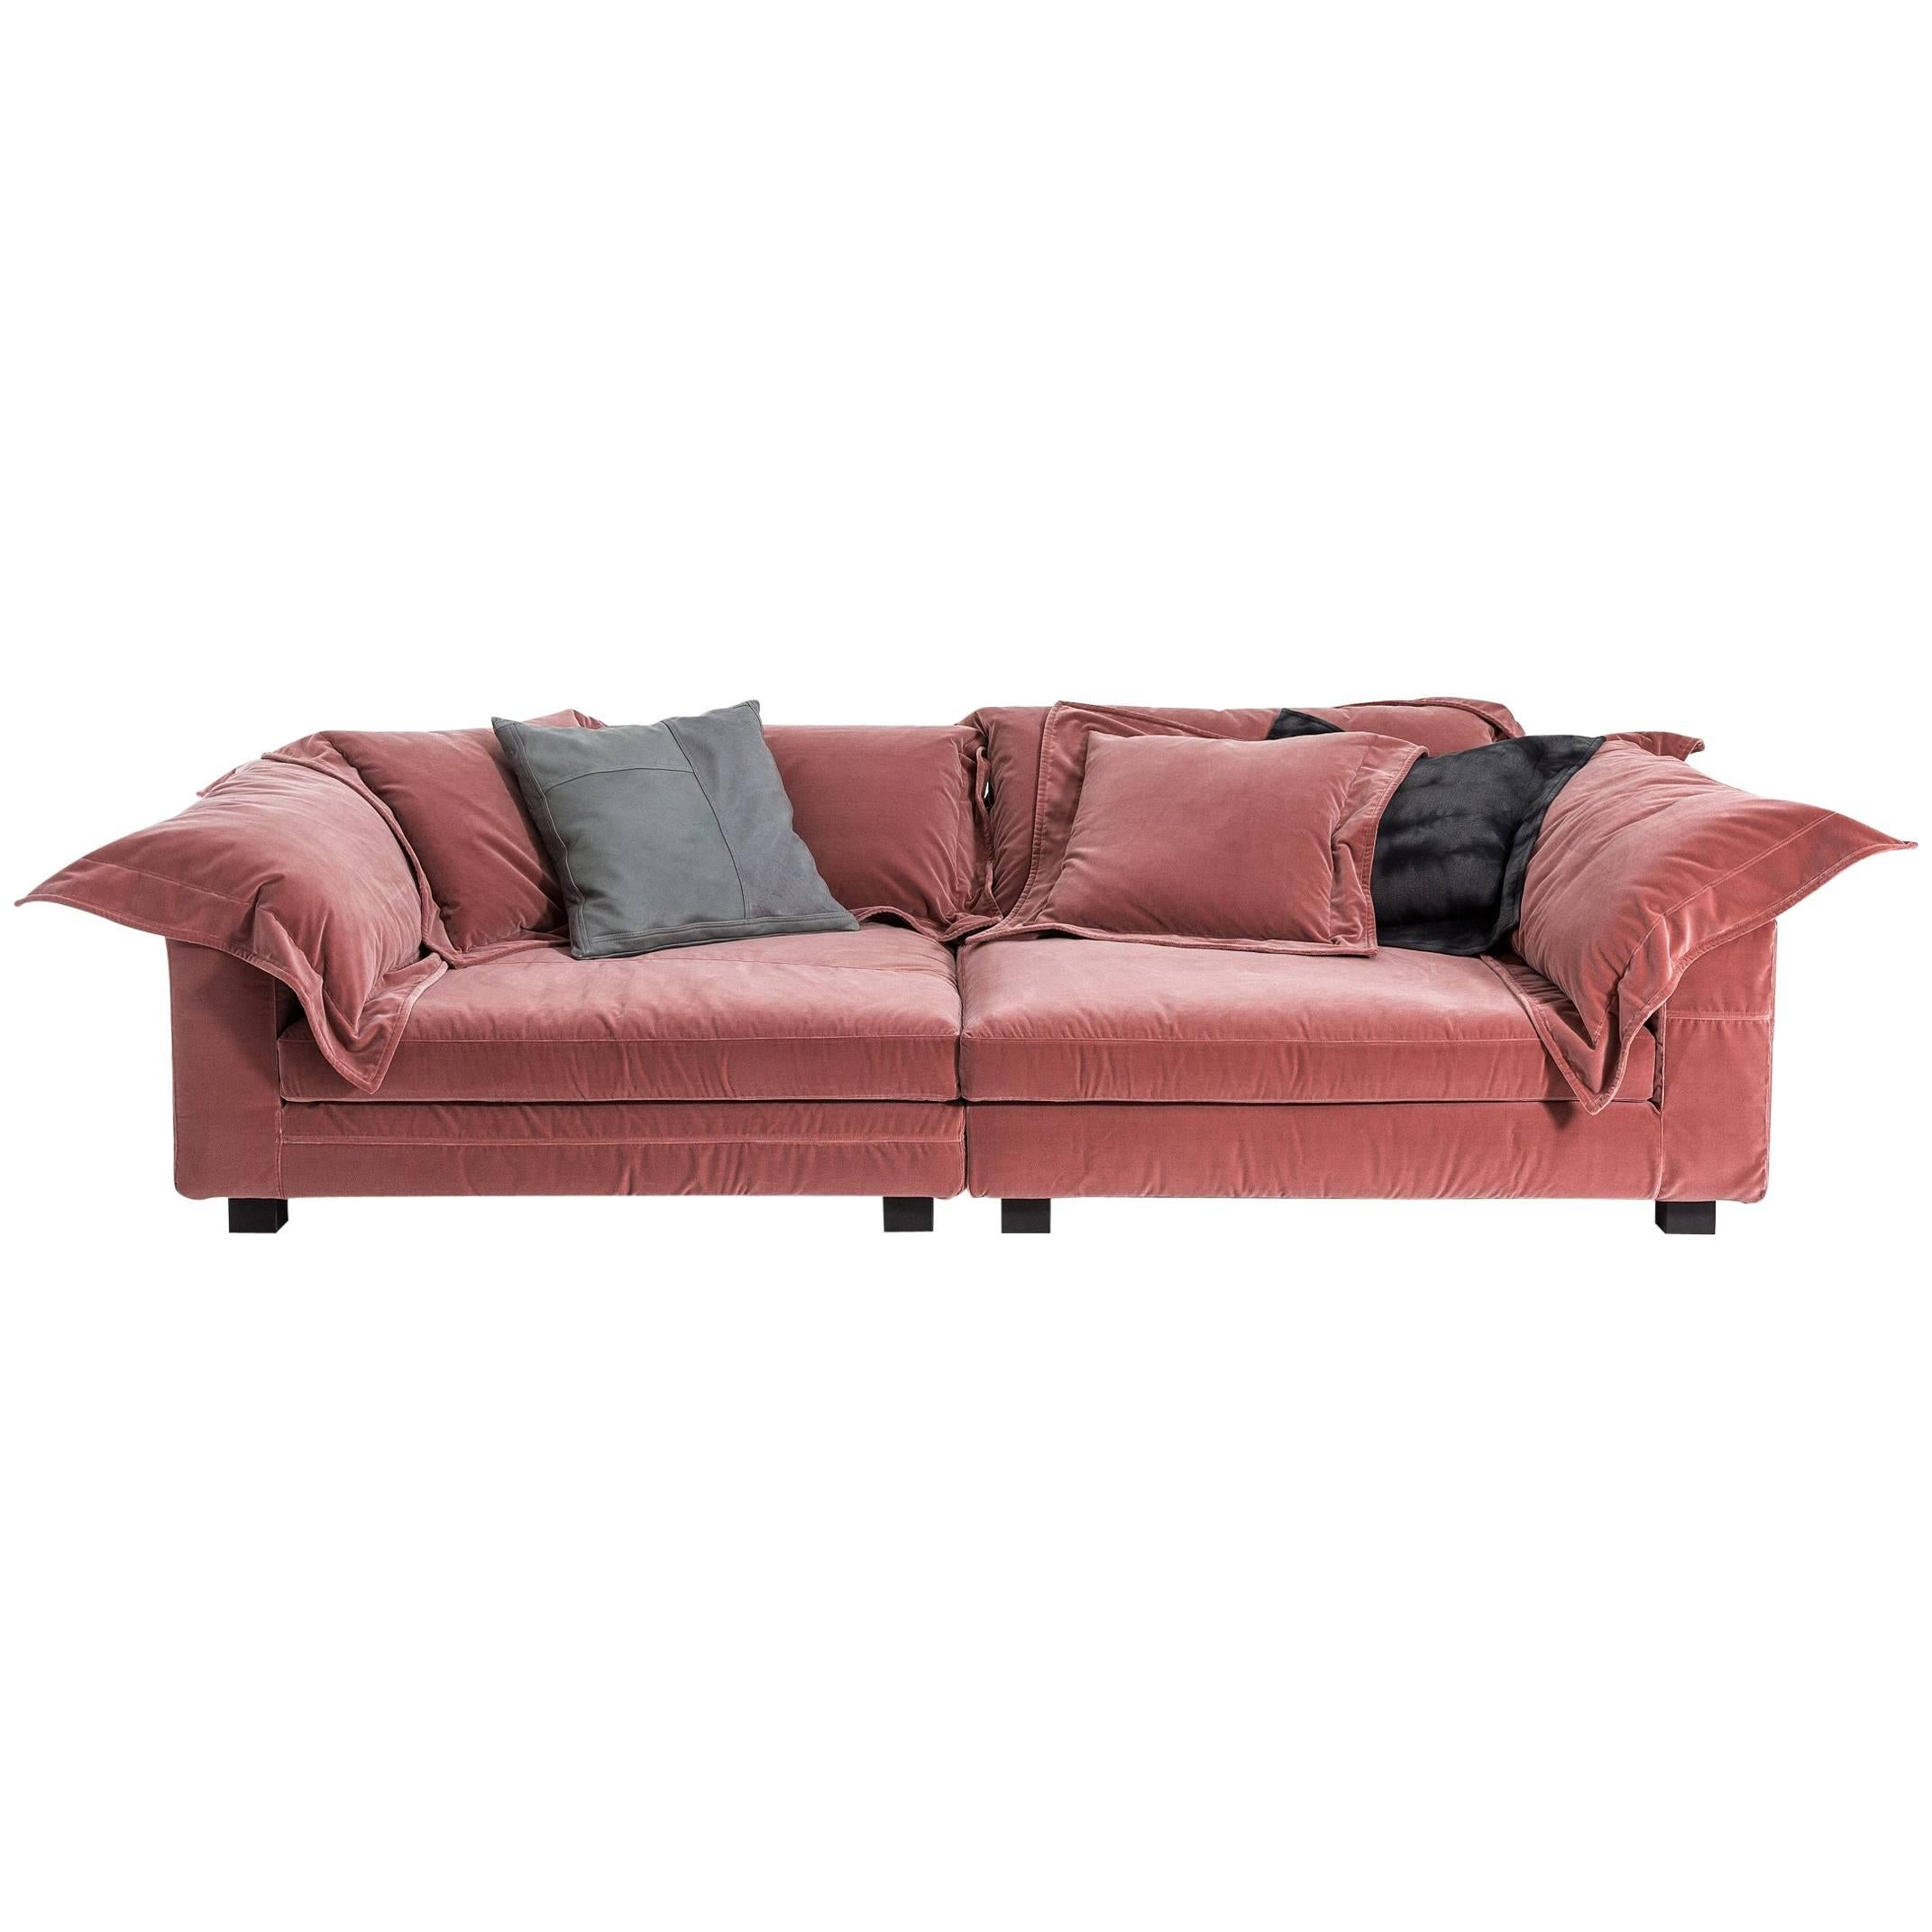 Nebula Nine Sofa By Moroso With Goose Down Cushions For Sale At ...